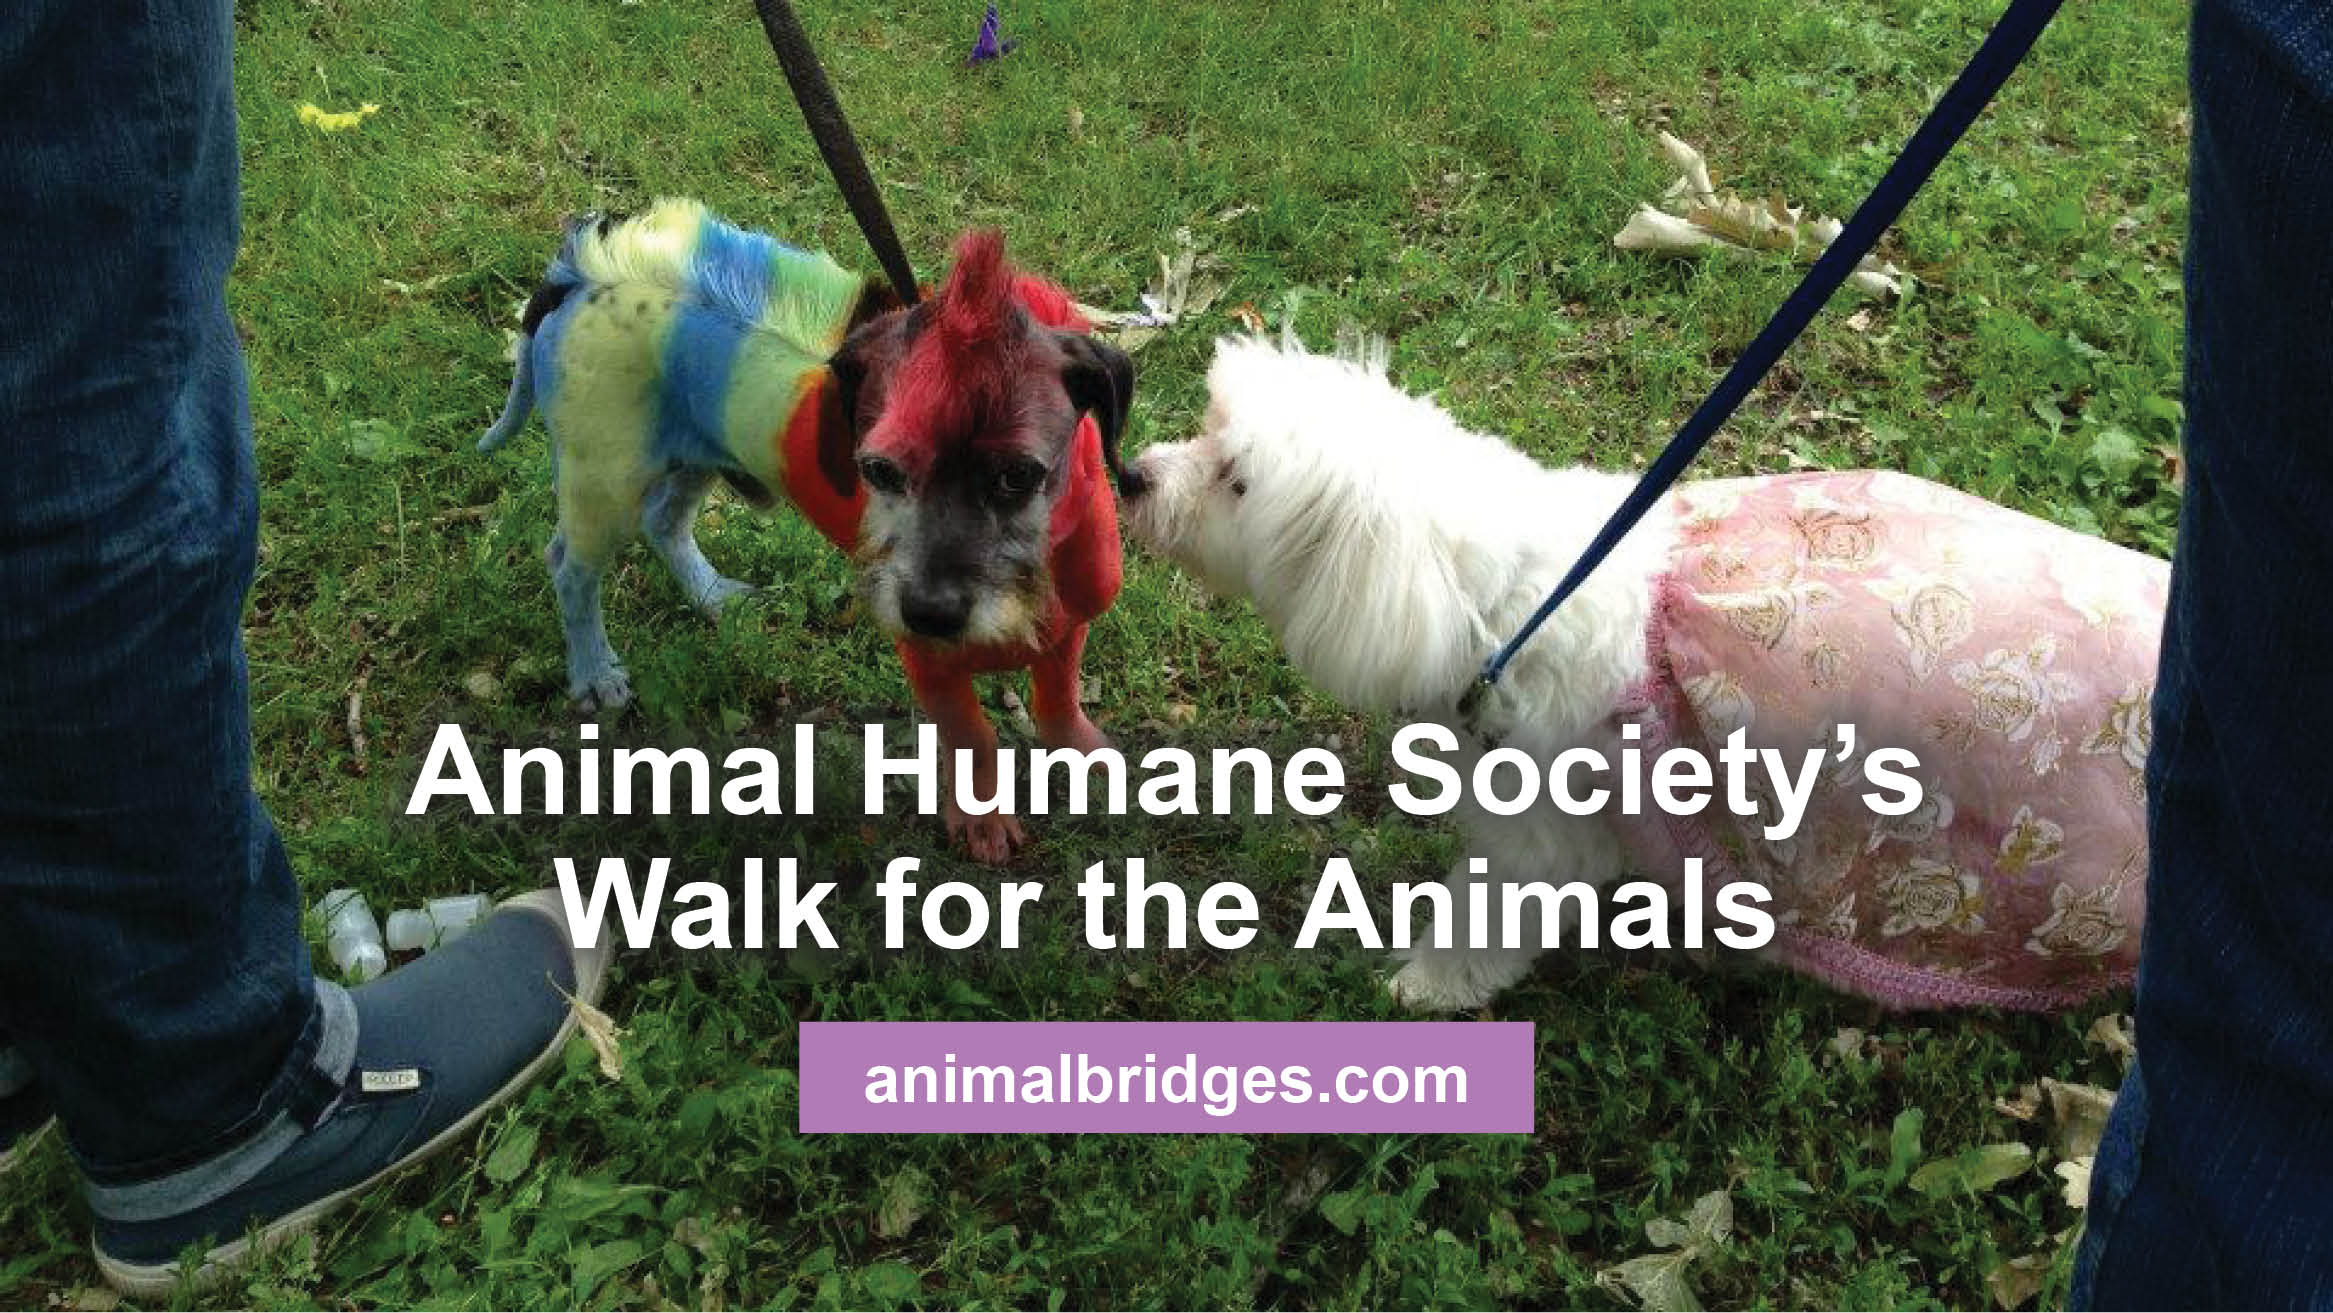 Animal Humane Society's Walk for the Animals